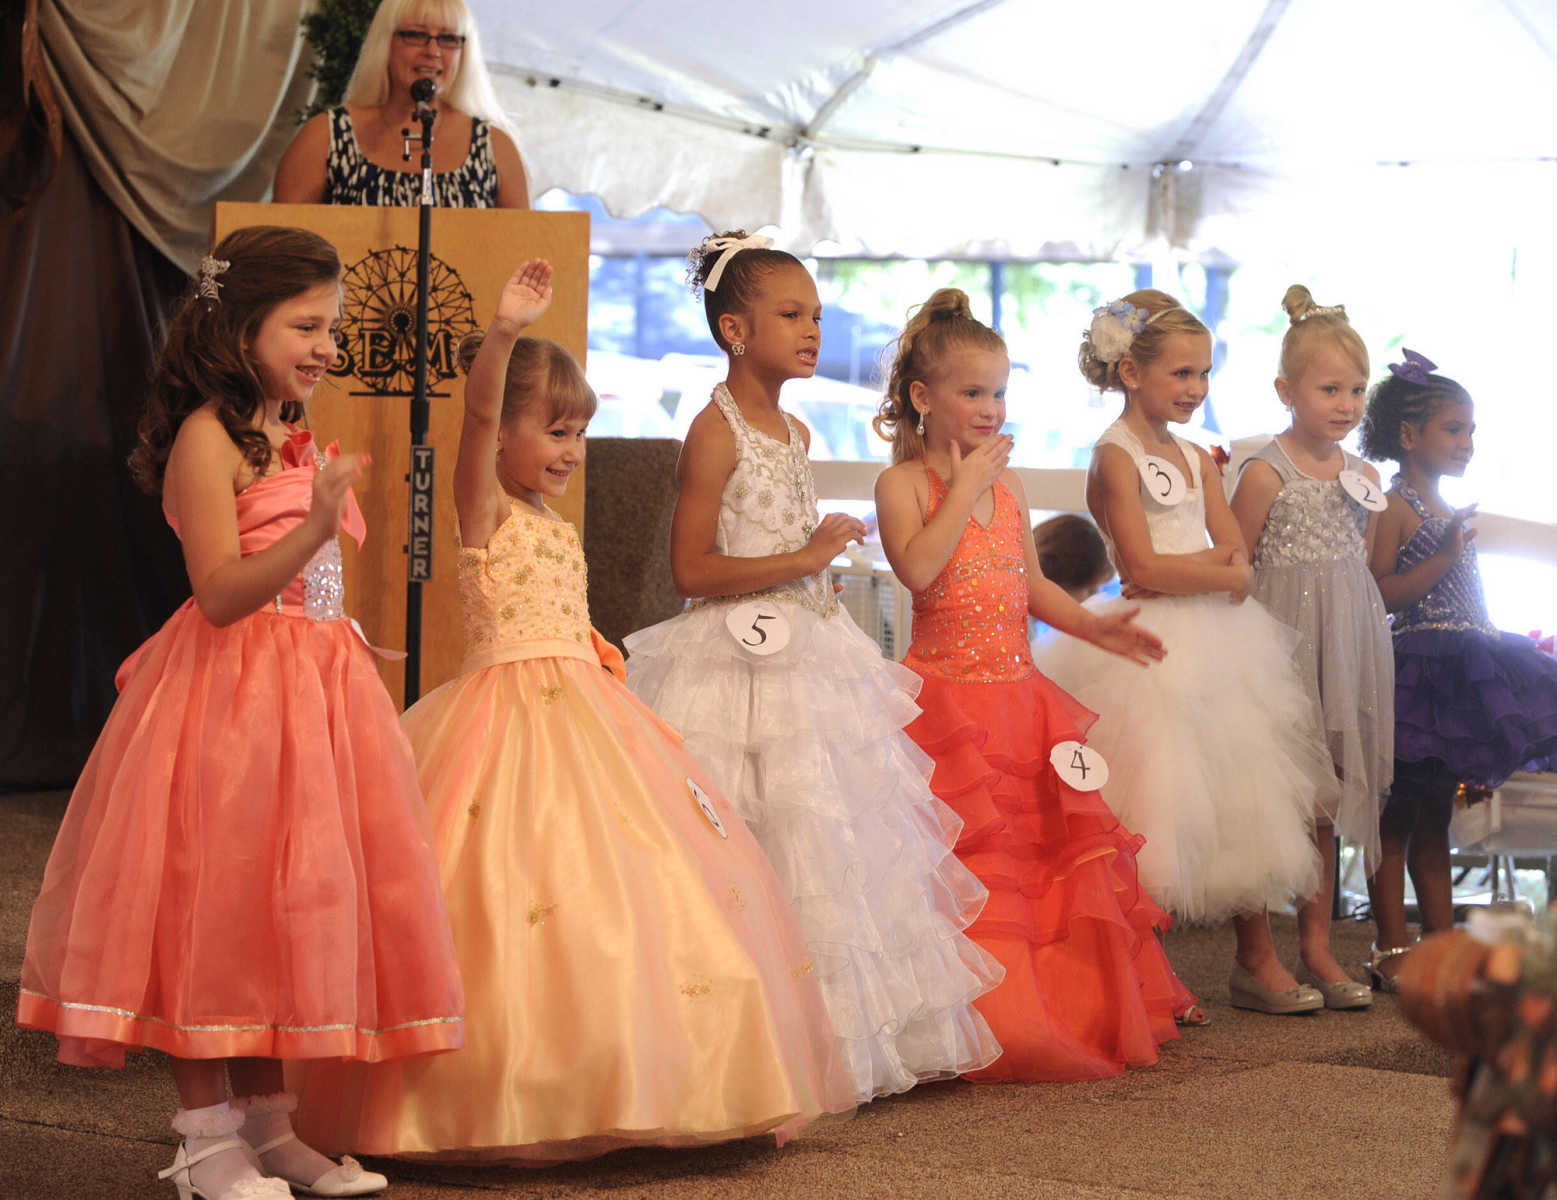 Miss missouri state fair pageant - Pageant Contestants For Little Miss Semo Fair Pose For The Judges Sunday Sept 13 2015 At The Semo District Fair In Cape Girardeau Fred Lynch